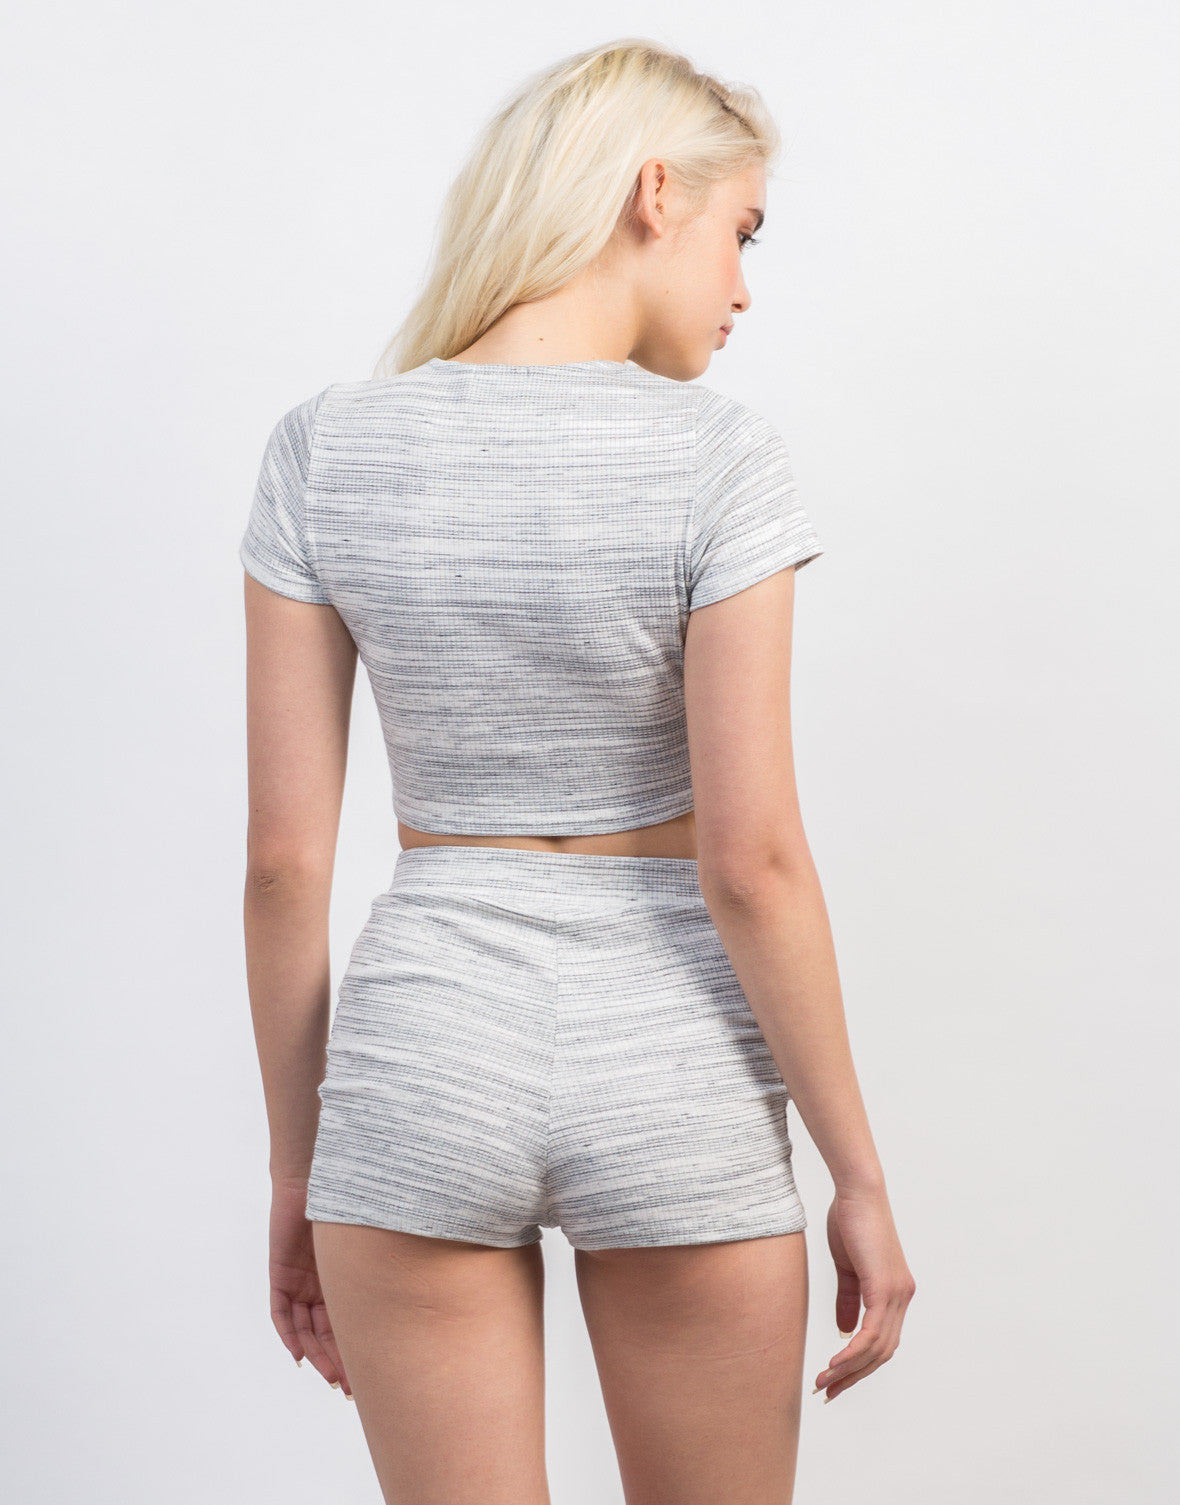 Back View of Ribbed Striped Cropped Tee